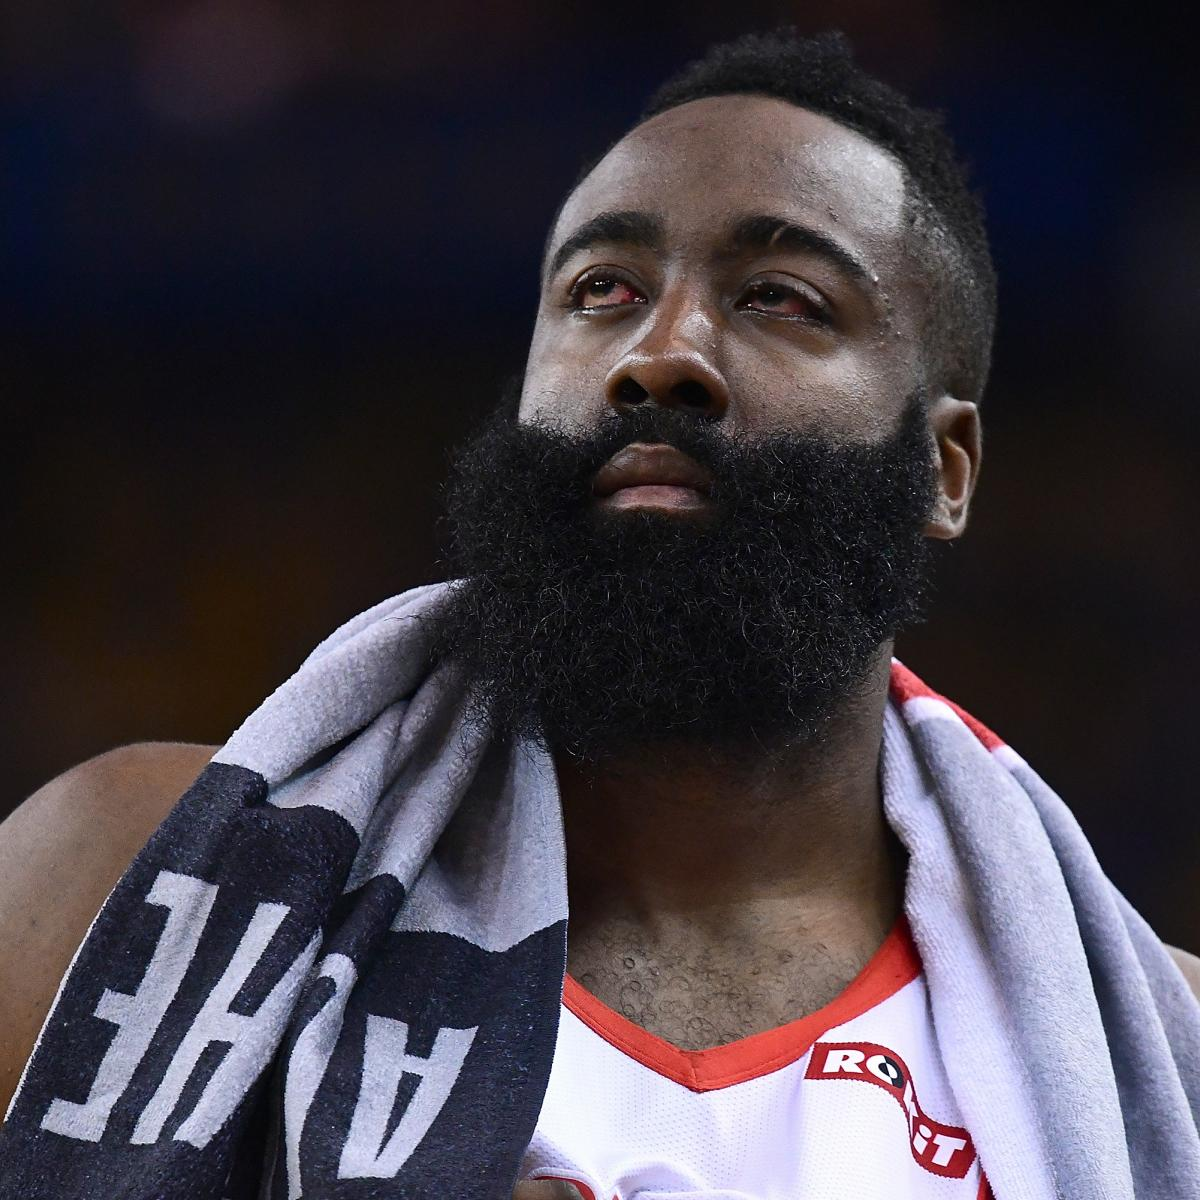 James Harden 'Could Barely See' After Eye Injury in Rockets vs. Warriors Game 2